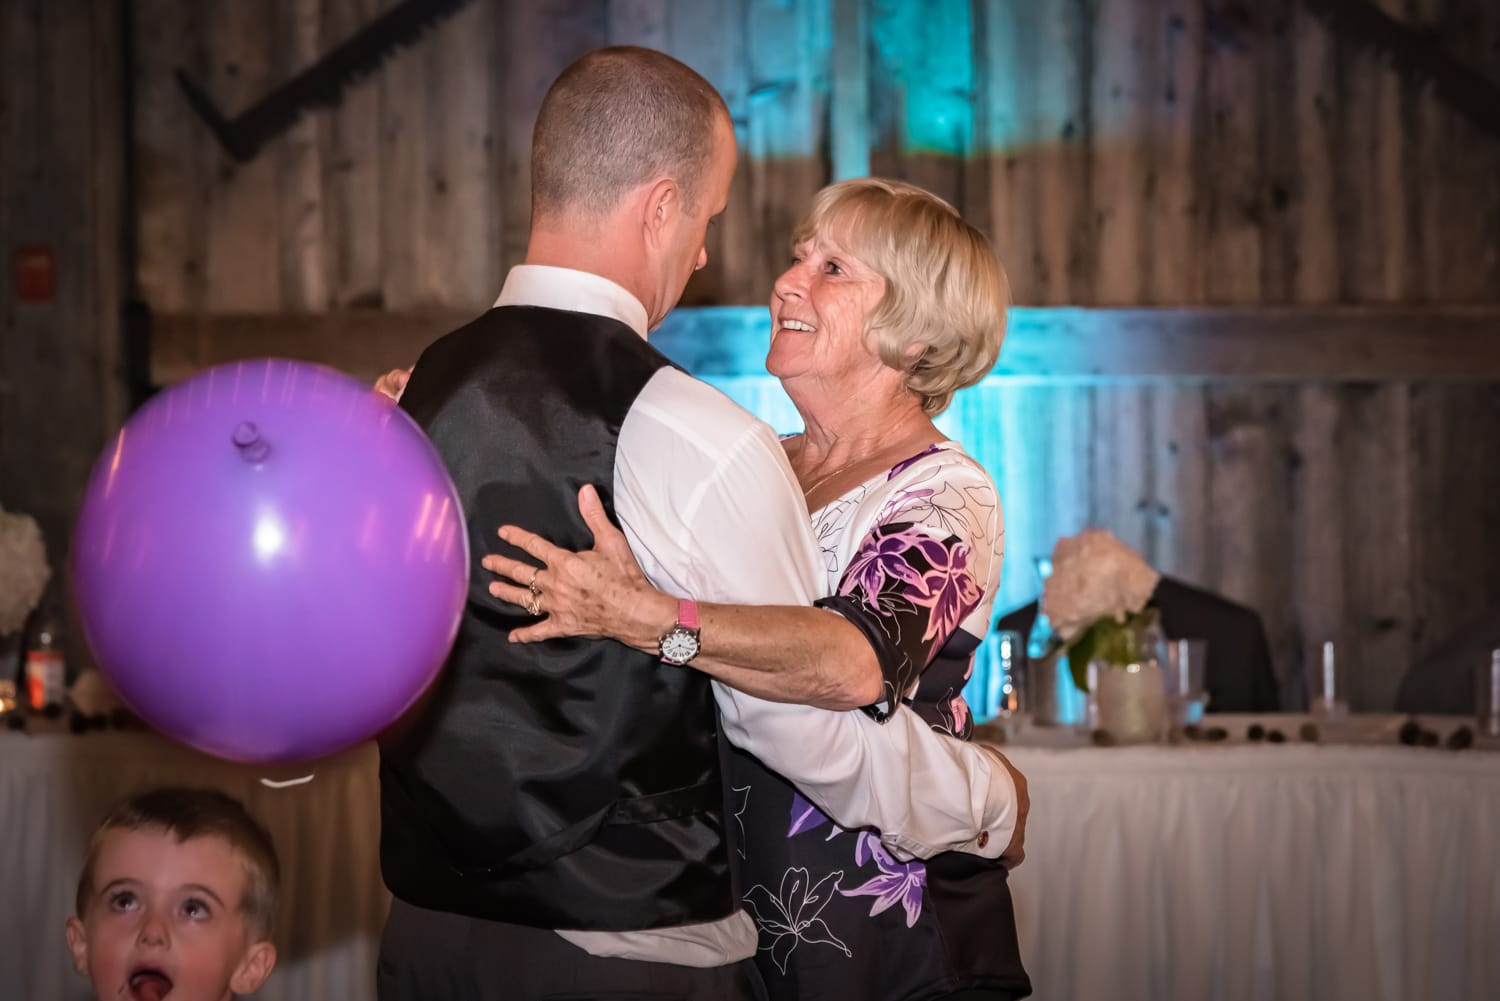 A mother dance's with her son, the groom, during his wedding at the Old Orchard Inn Heritage Barn in Wolfville NS.